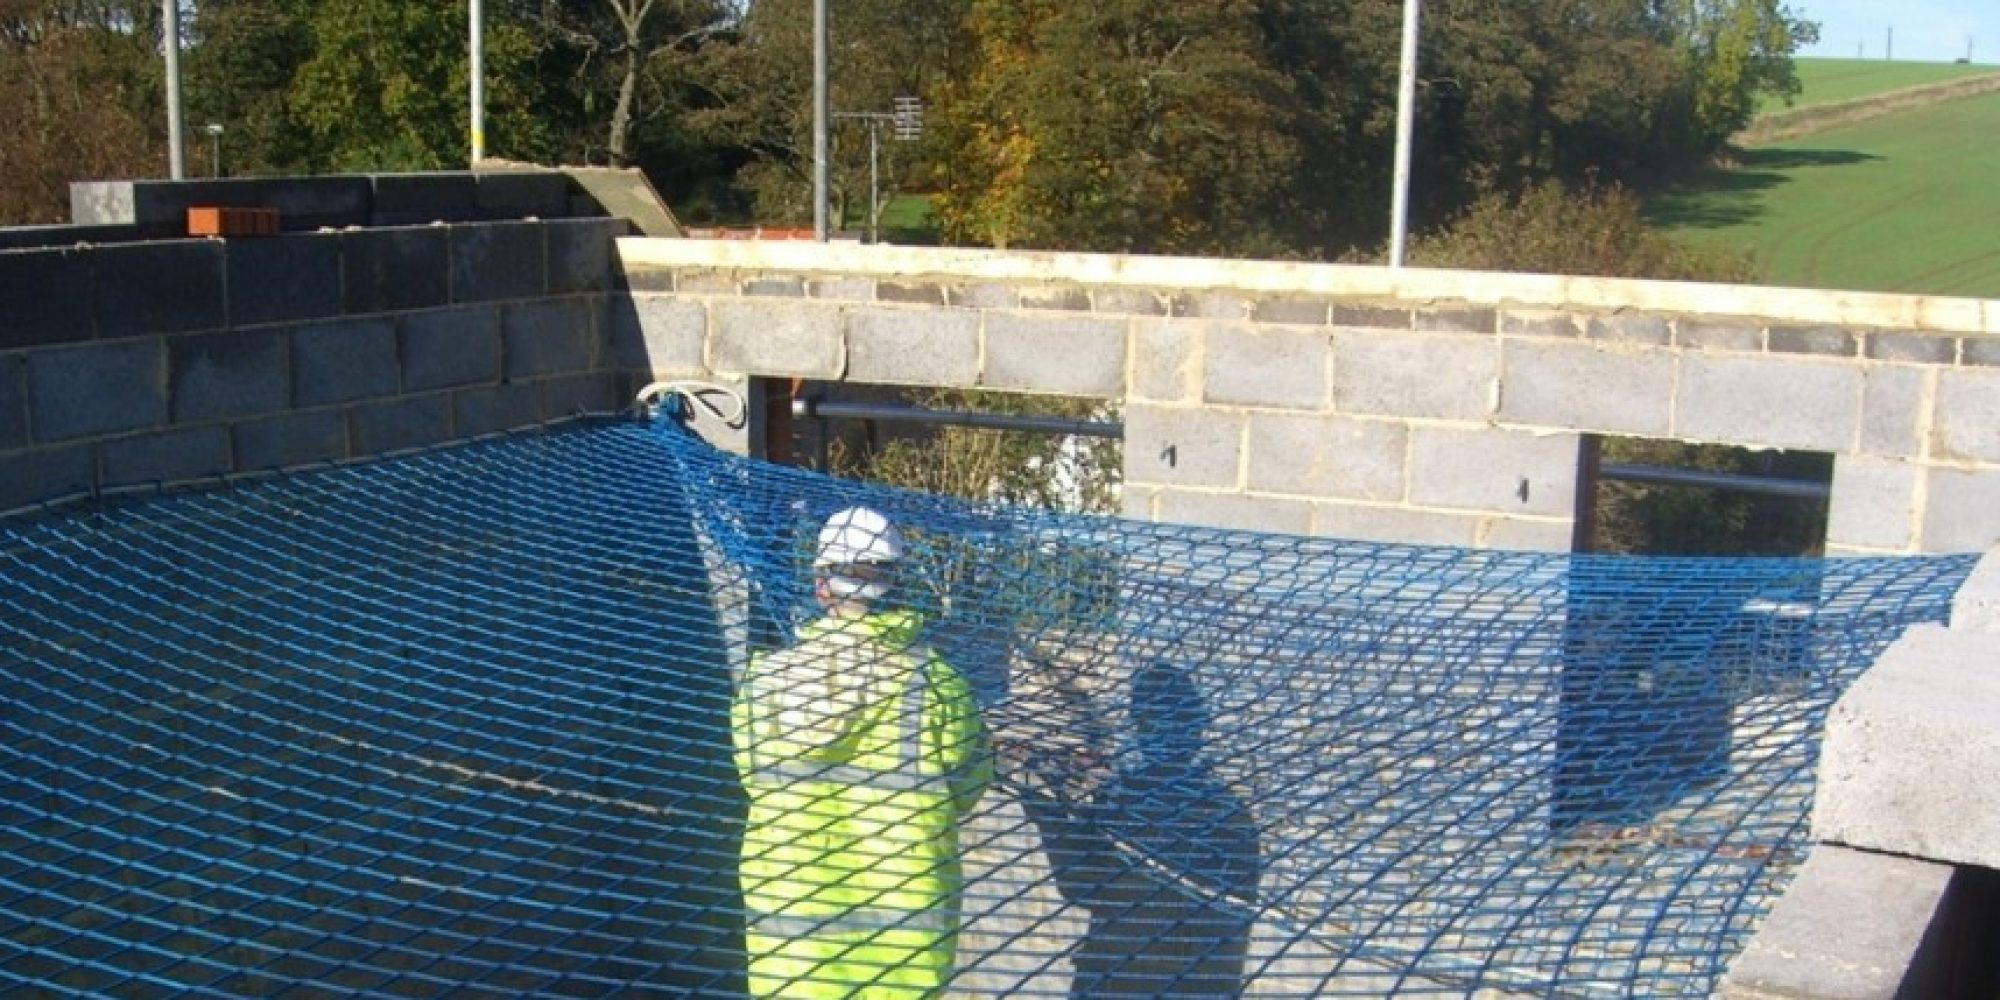 Netting Services (Northern) Ltd